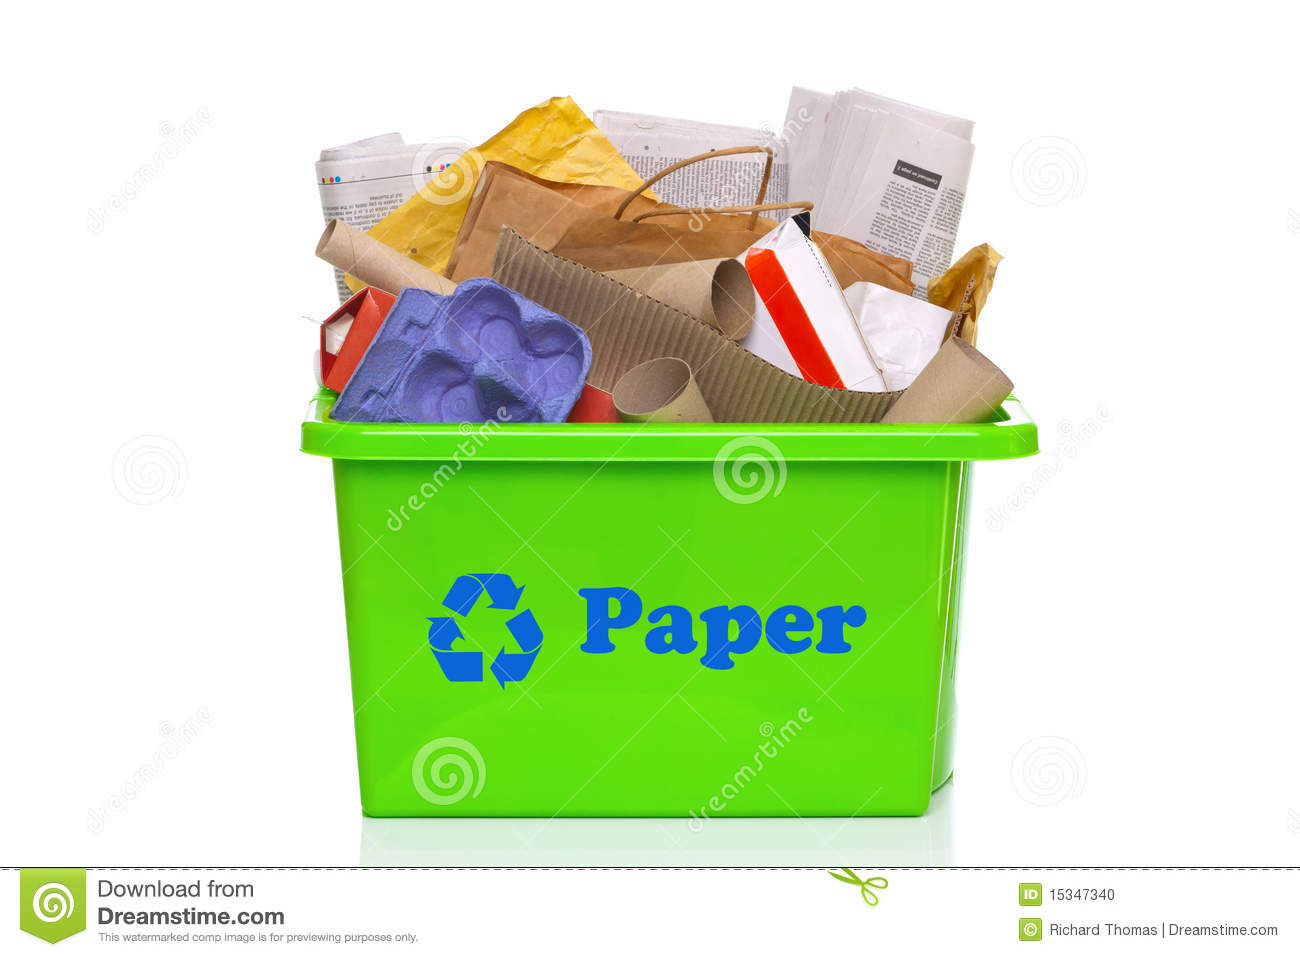 recycle paper clipart #8